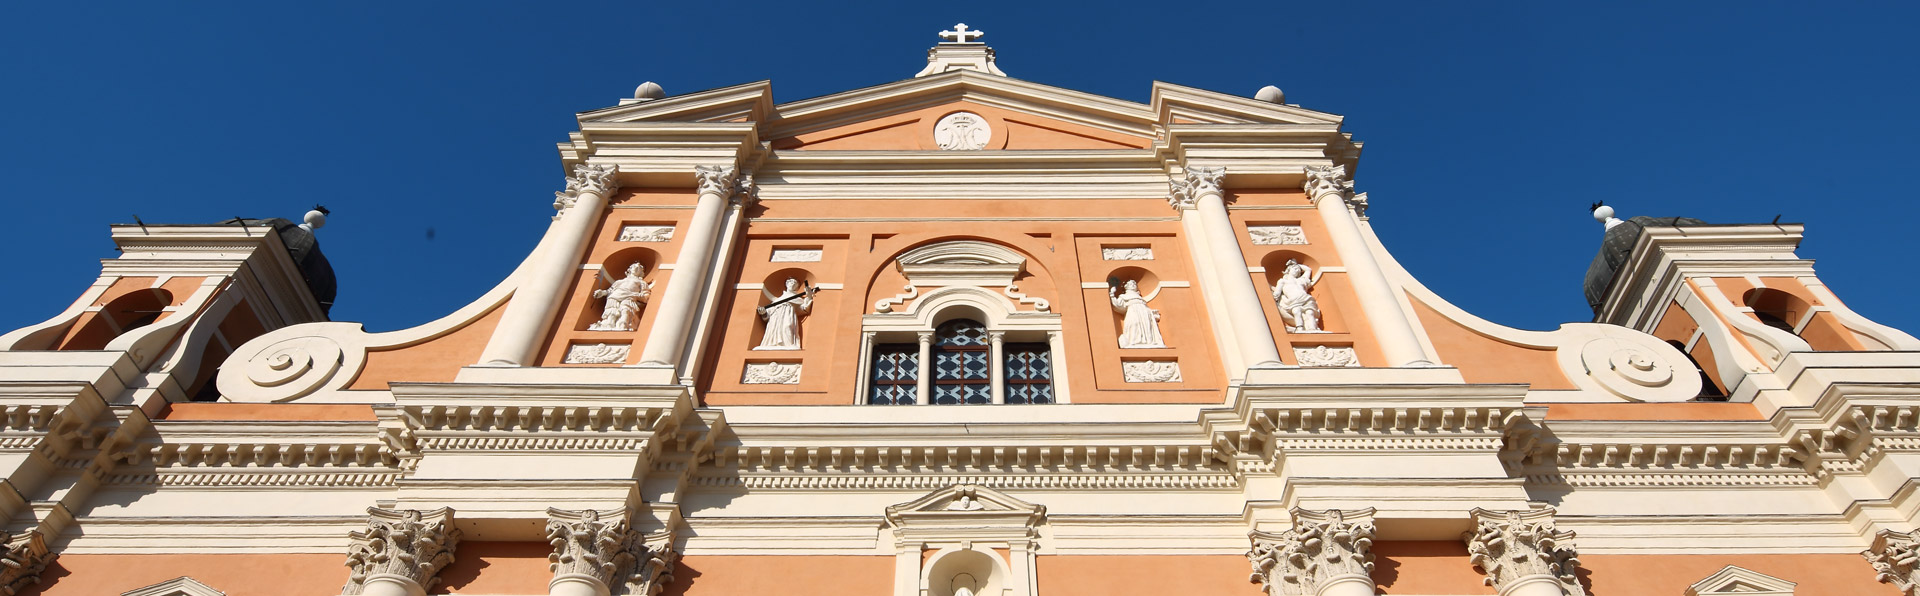 cmb-restauri-renovation-cattedrale-carpi-cathedral